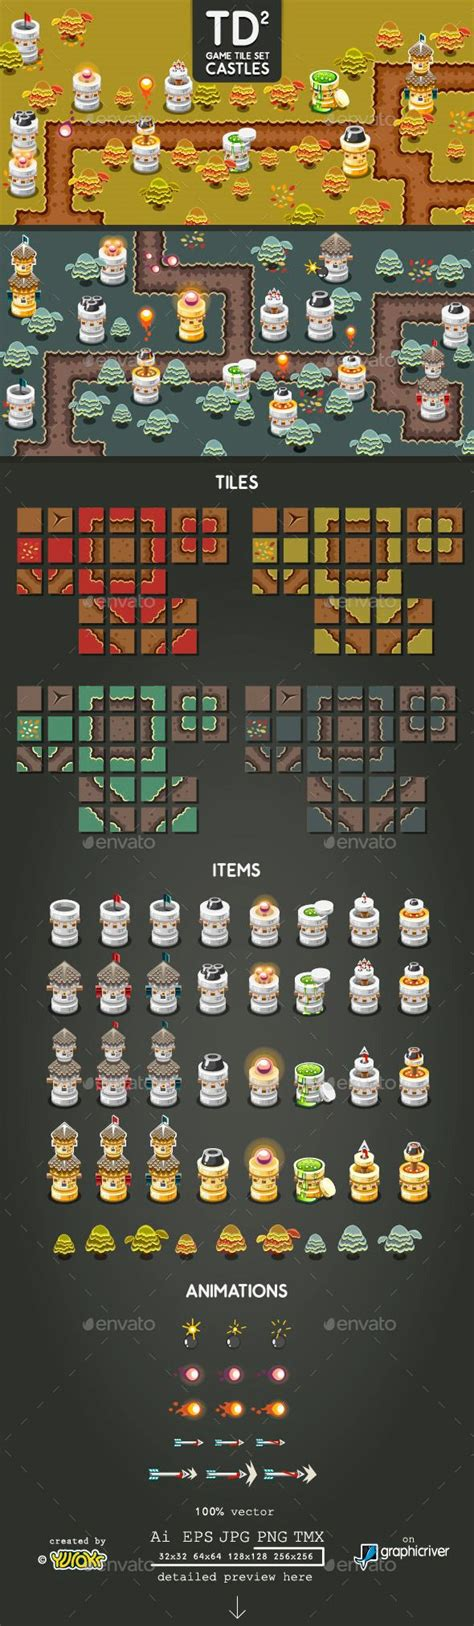 Tower Defence Game Tile Set Two Tilesets Game Assets